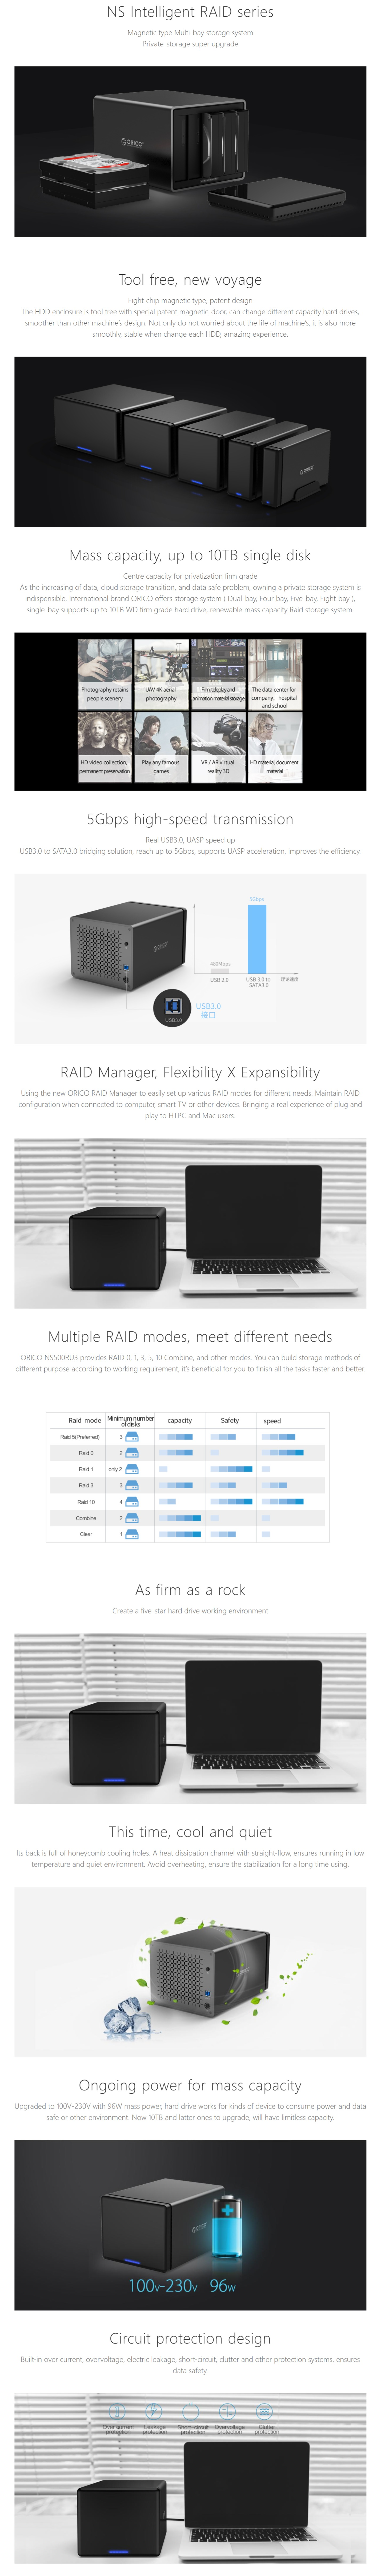 A large marketing image providing additional information about the product ORICO 5 Bay USB3.0 Hard Drive Enclosure with RAID - Additional alt info not provided